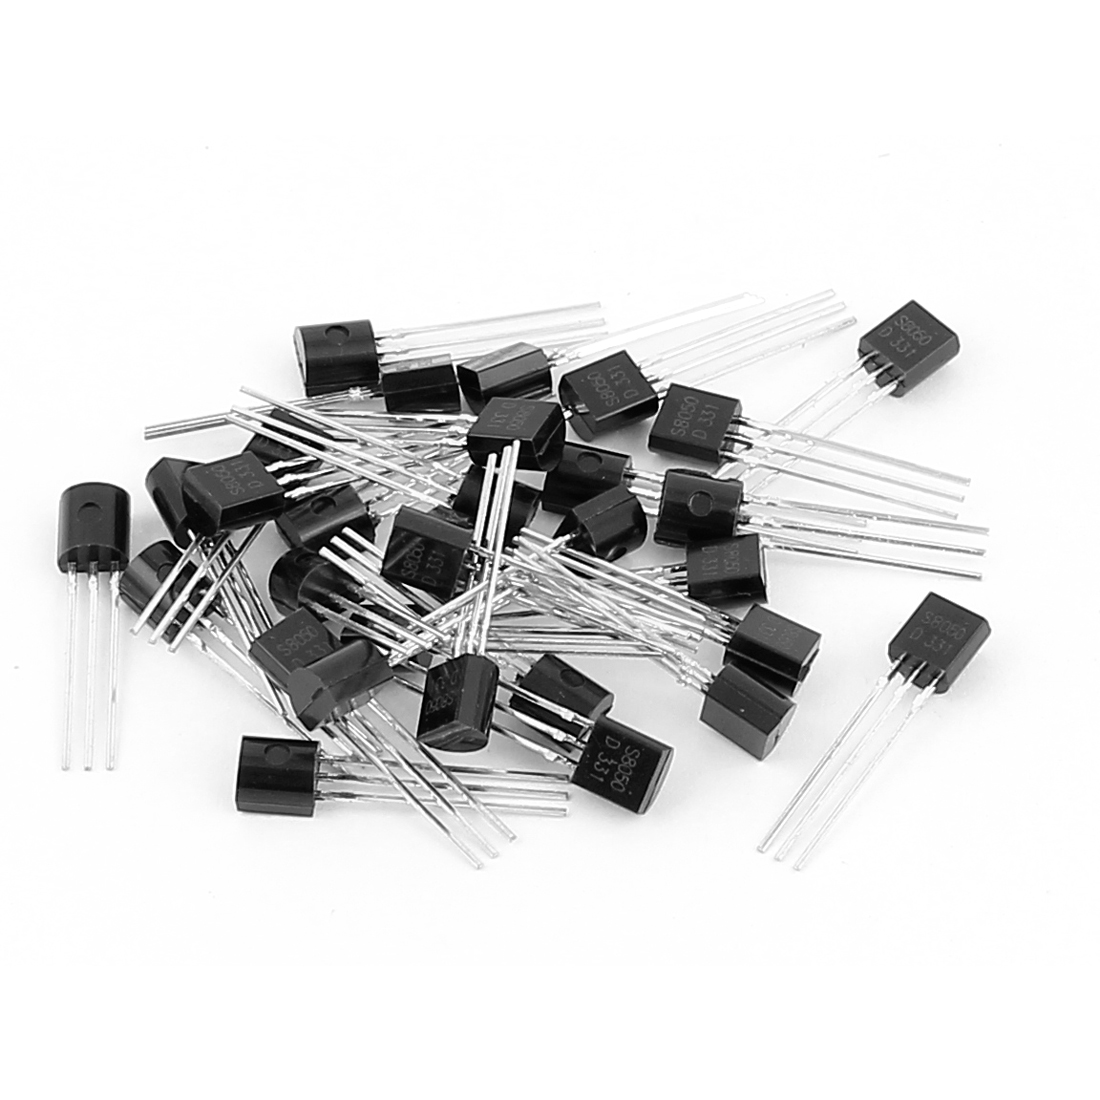 30 Pcs S8050 TO-92 NPN Bipolar Low Power Junction Transistors 40V 0.5A